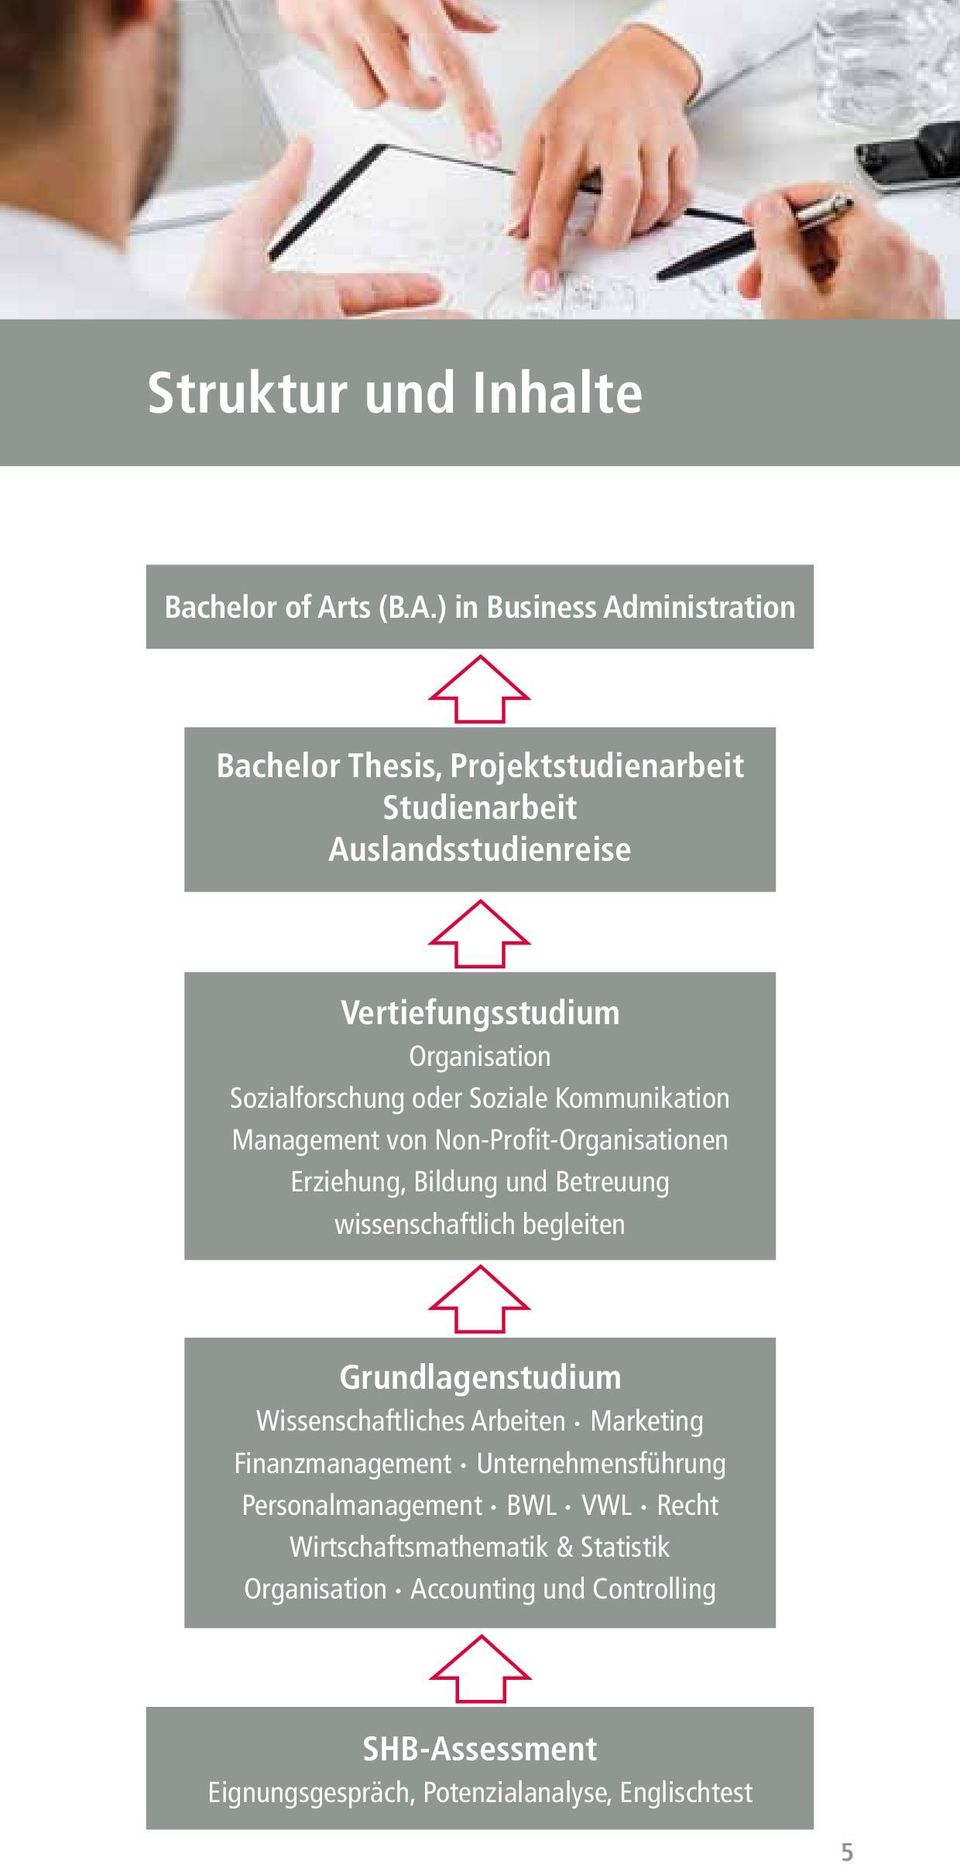 ) in Business Administration Bachelor Thesis, Projektstudienarbeit Studienarbeit Auslandsstudienreise Vertiefungsstudium Organisation